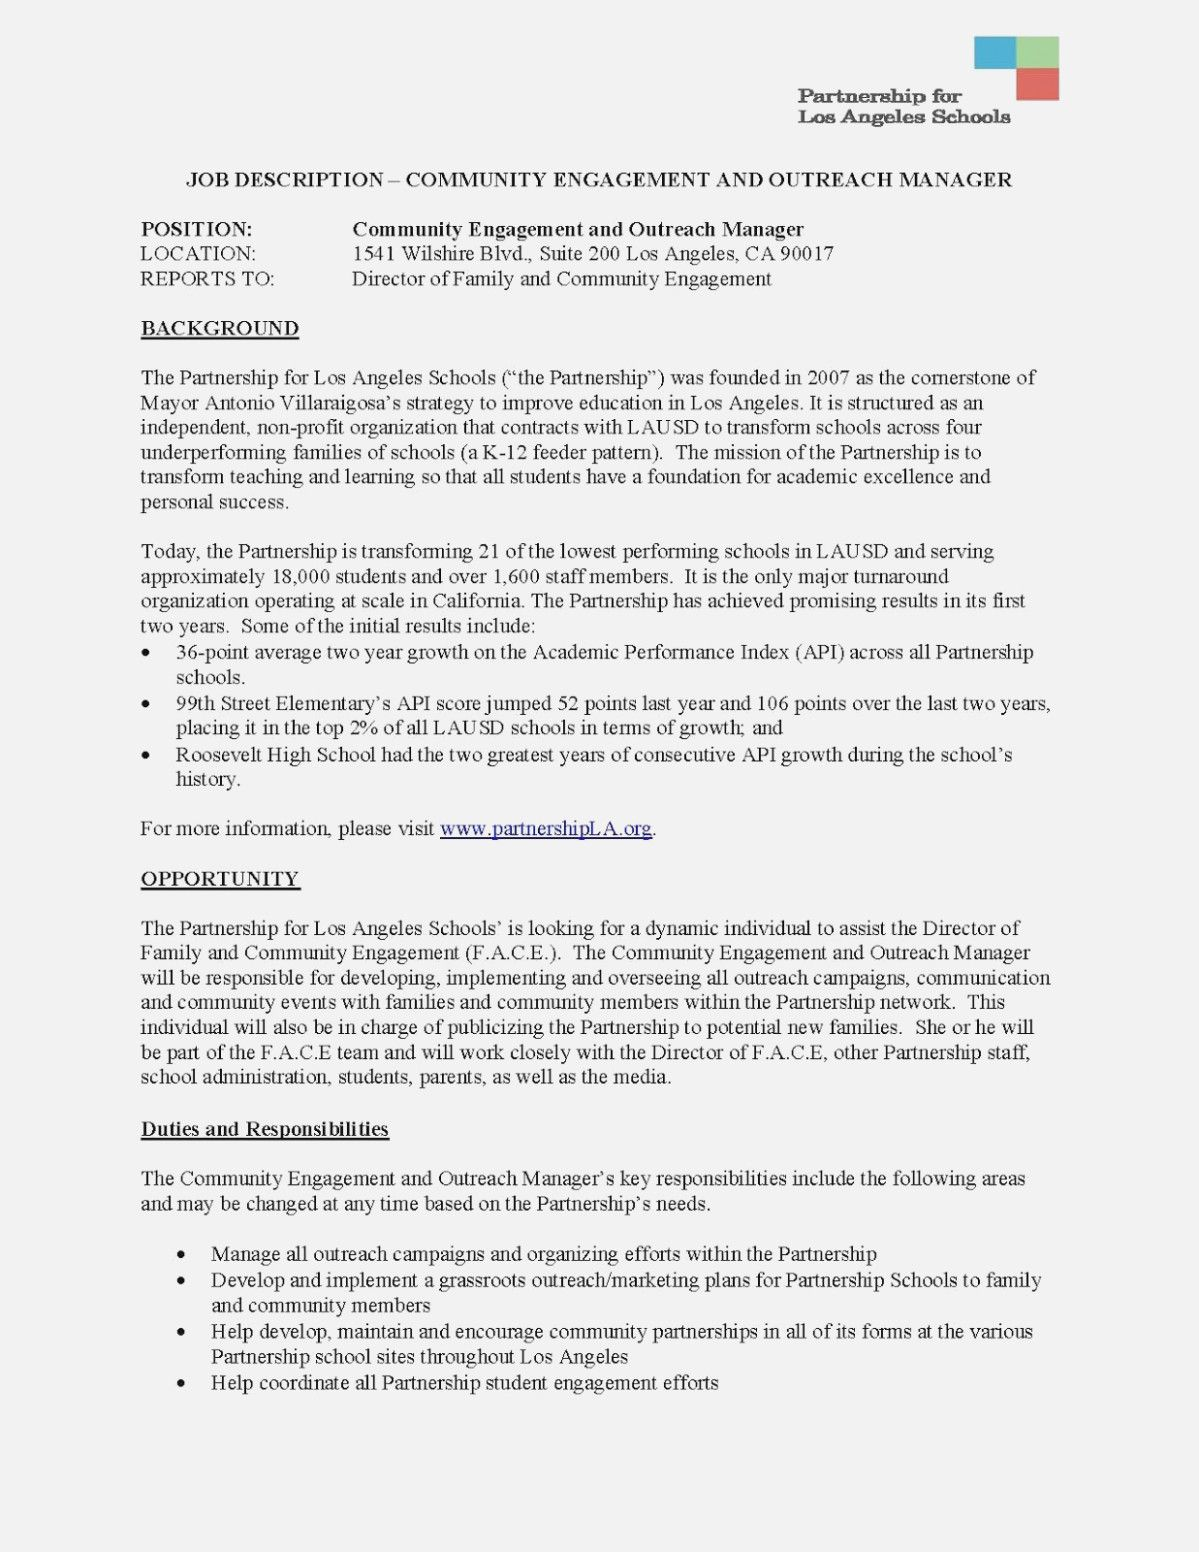 Cafeteria worker resume example 2019 cafeteria worker